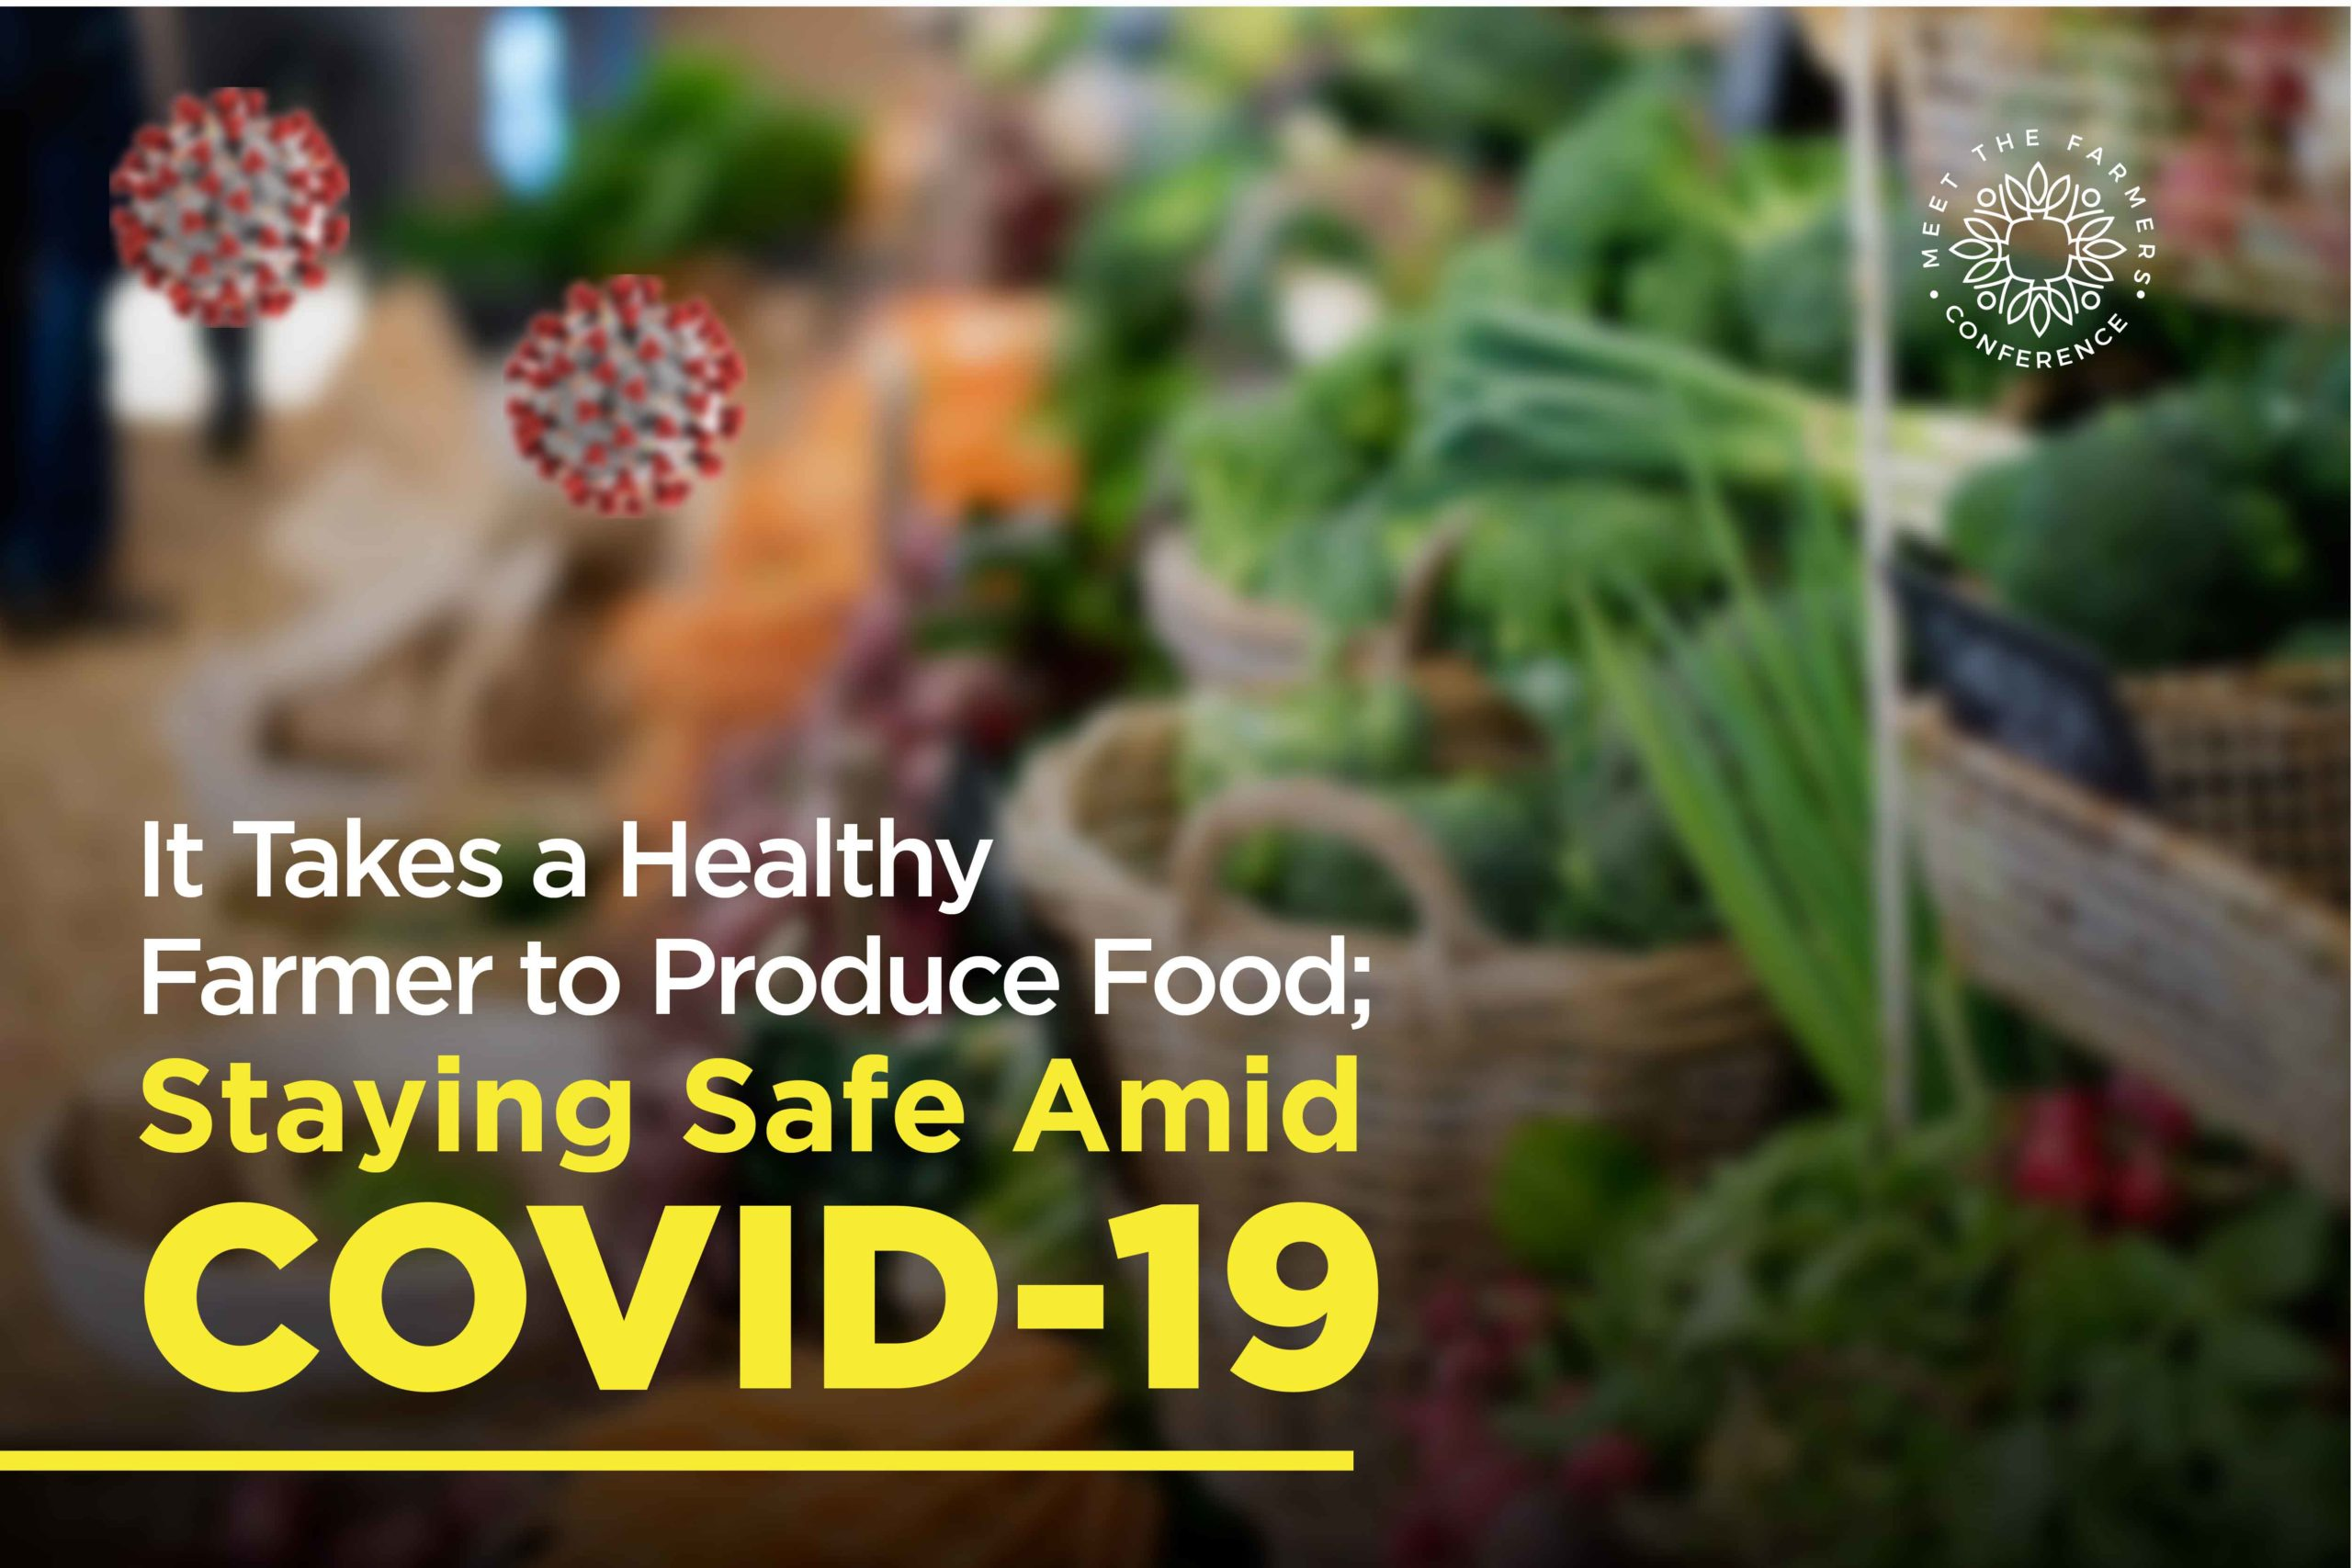 It takes a Healthy Farmer to Produce Food – Staying Safe Amid Covid19